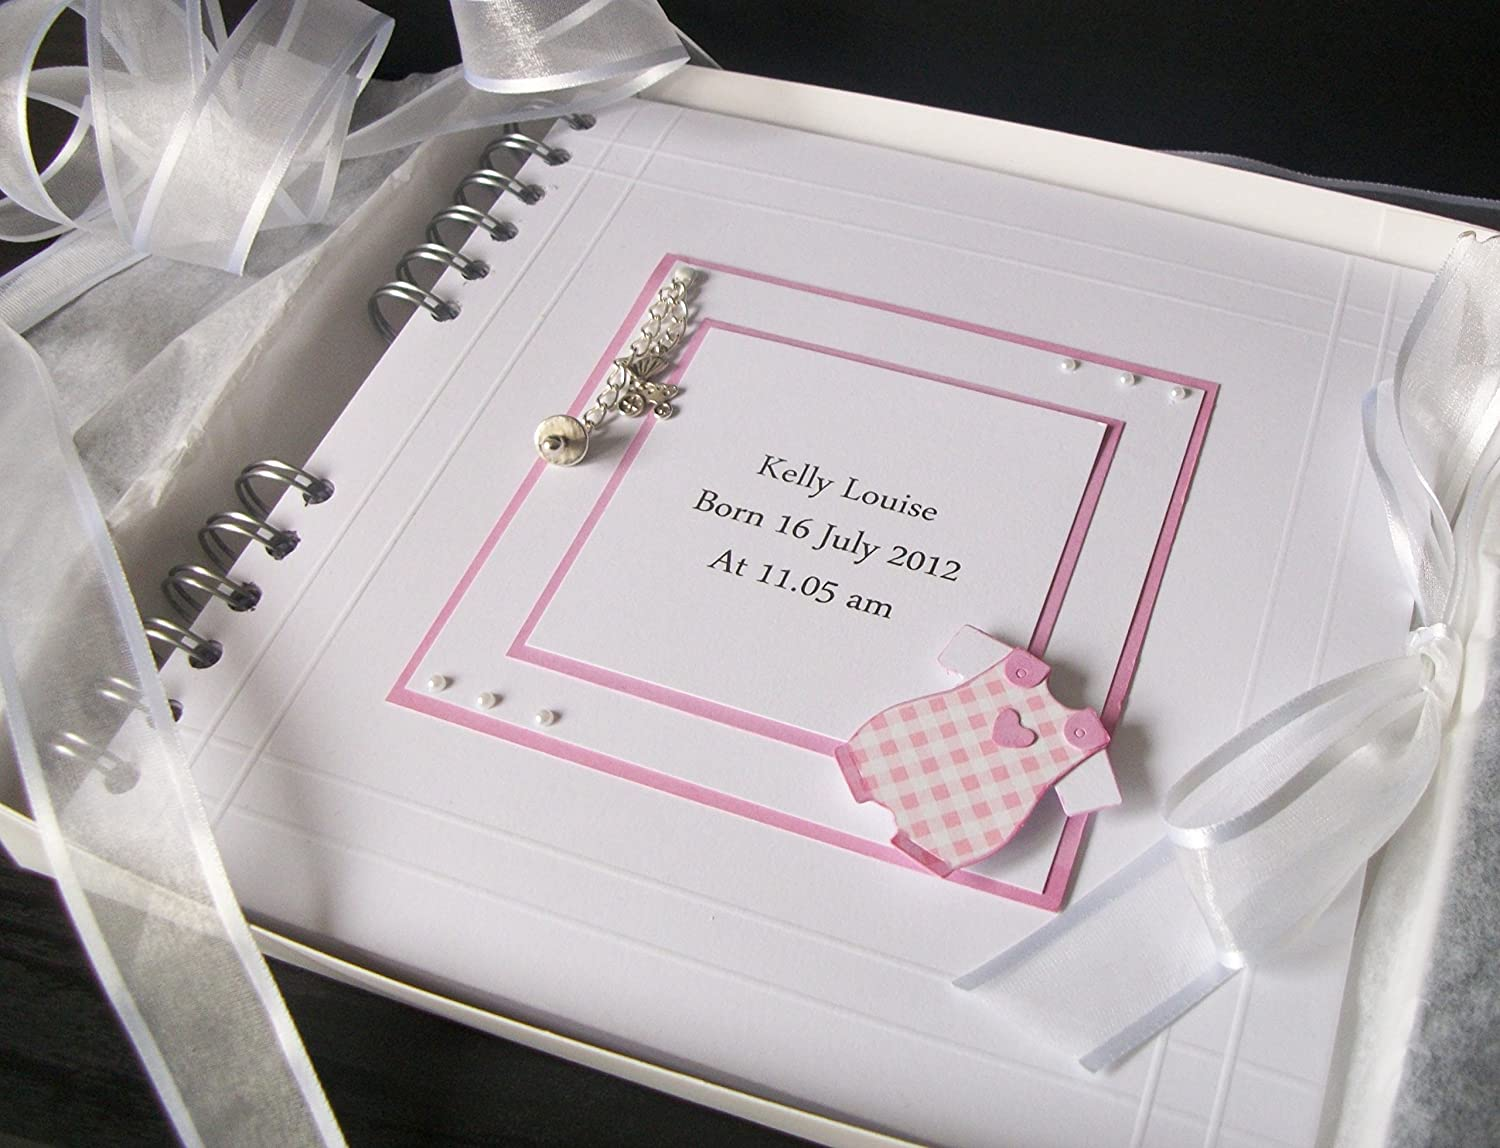 Christening Guest Book, Baby Album , Scrapbook, Memory Book, Personalised , Boxed 8 x 8 Boxed 8 x 8 Love2papercraft